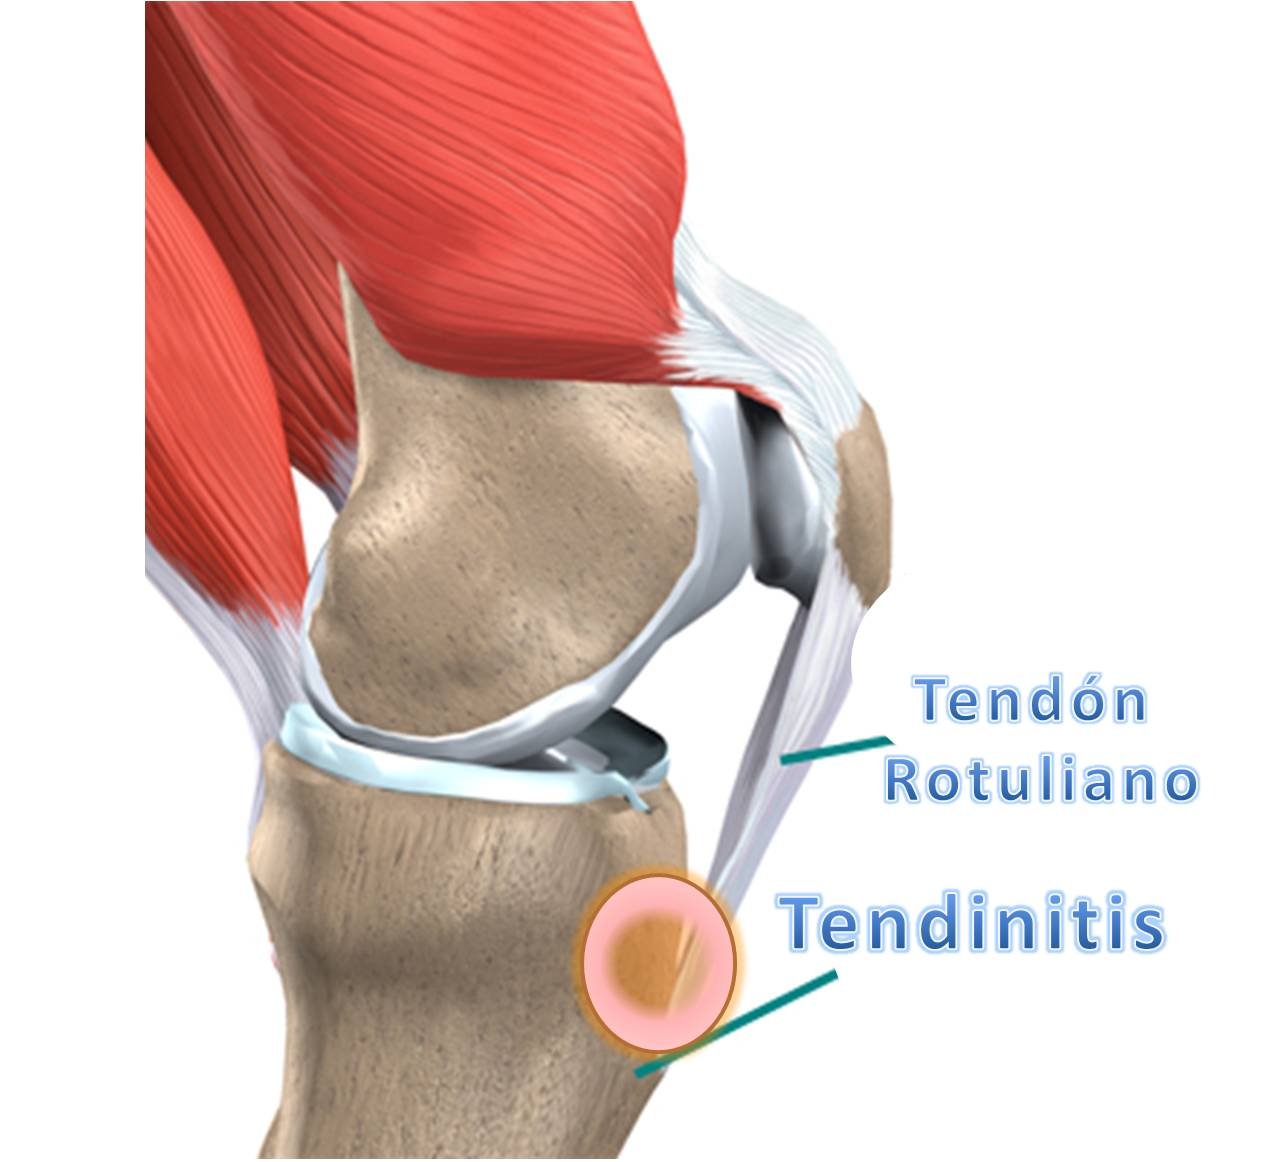 LA TENDINITIS ROTULIANA